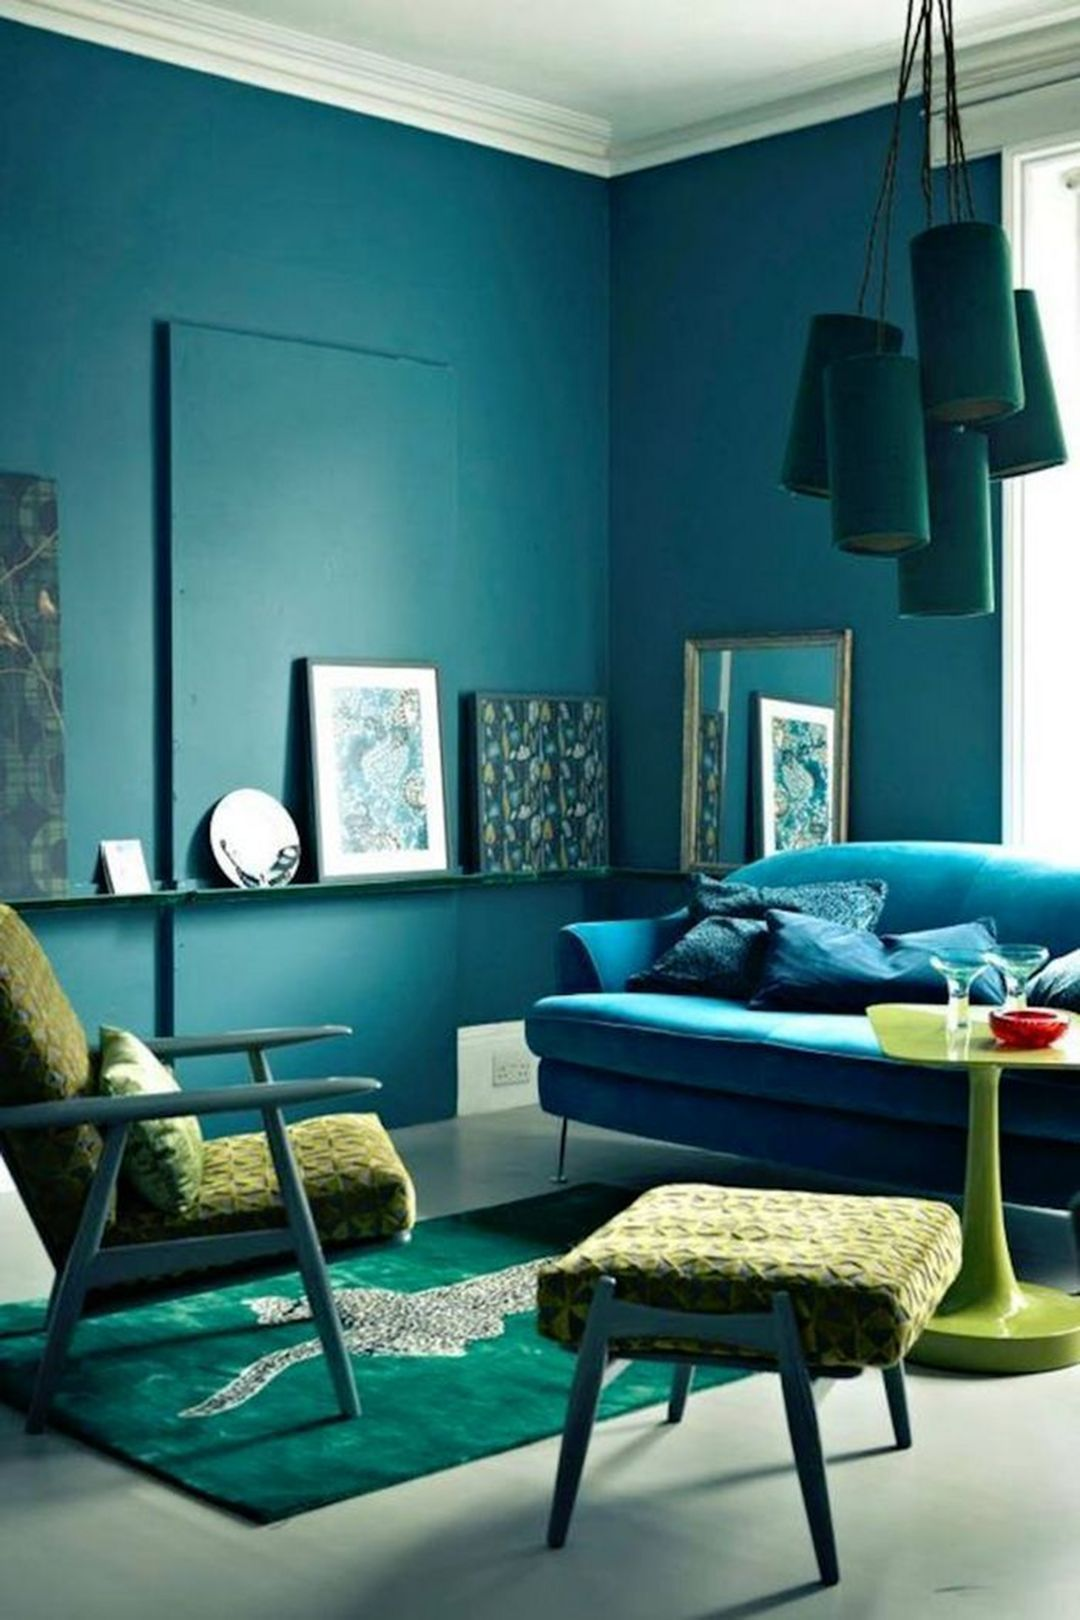 Beautiful Color Harmony Interior Design Ideas 110 Turquoise Room Living Room Color Schemes Room Color Schemes